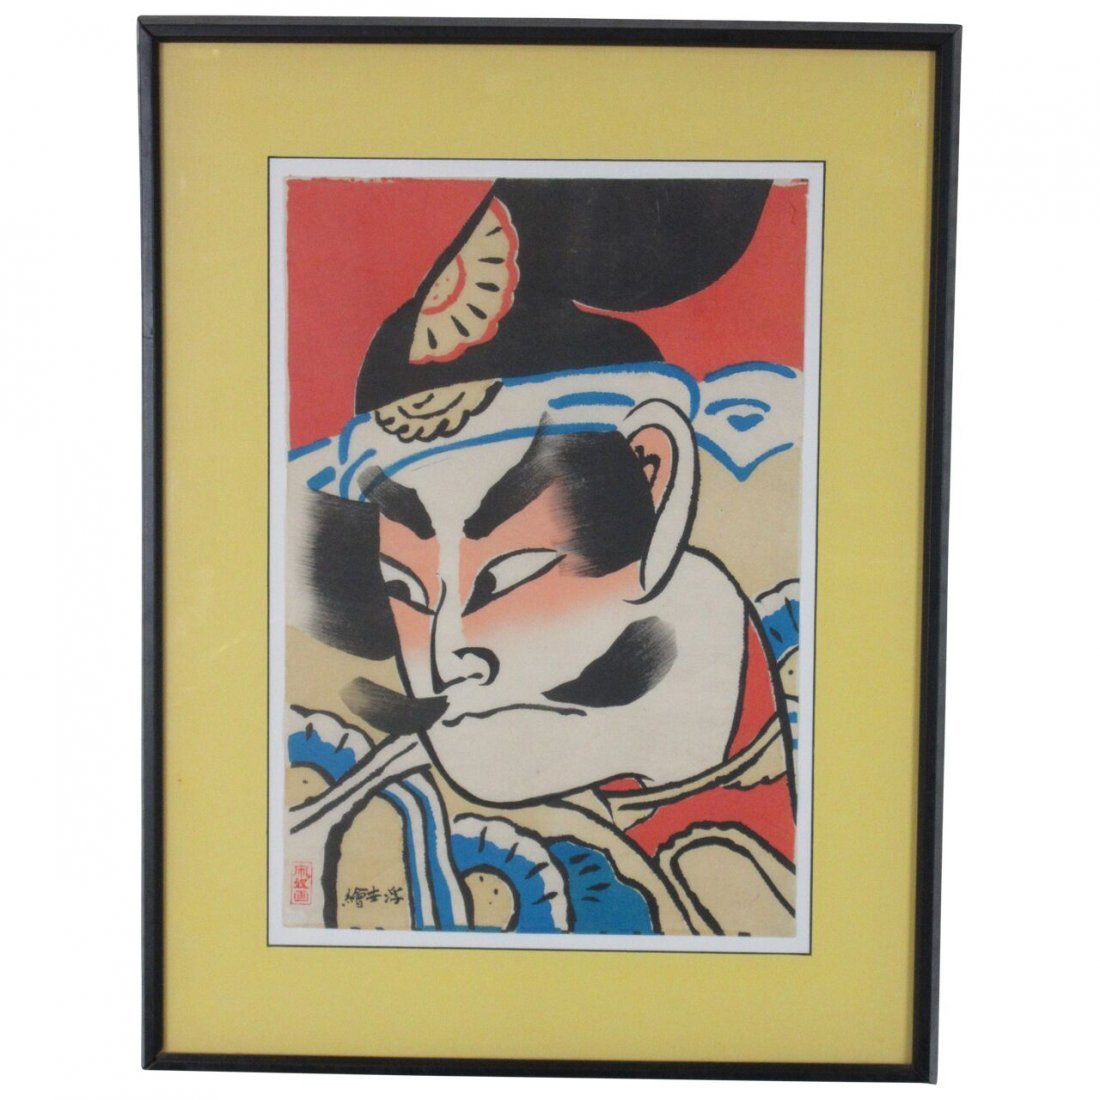 Japanese Watercolor / Woodblock Print of a Warrior.